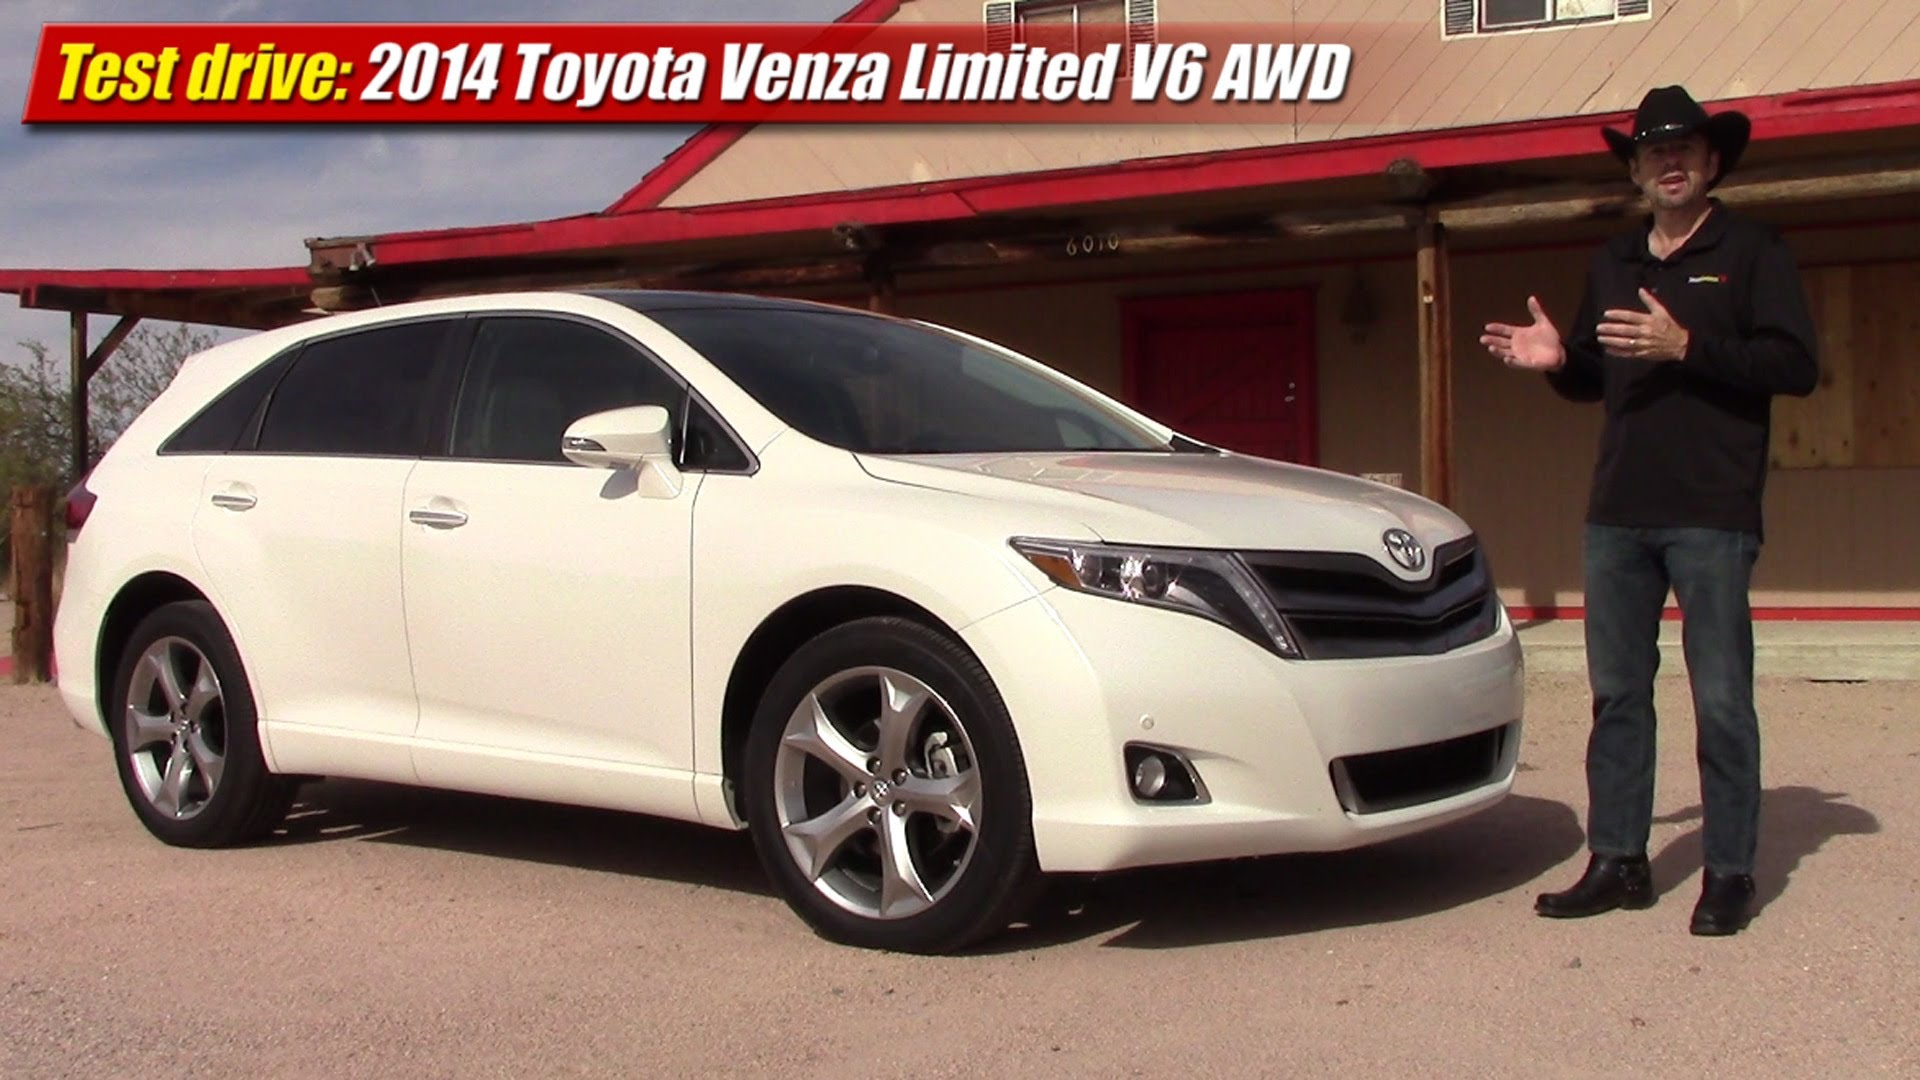 test drive 2014 toyota venza limited v6 awd testdriven tv. Black Bedroom Furniture Sets. Home Design Ideas